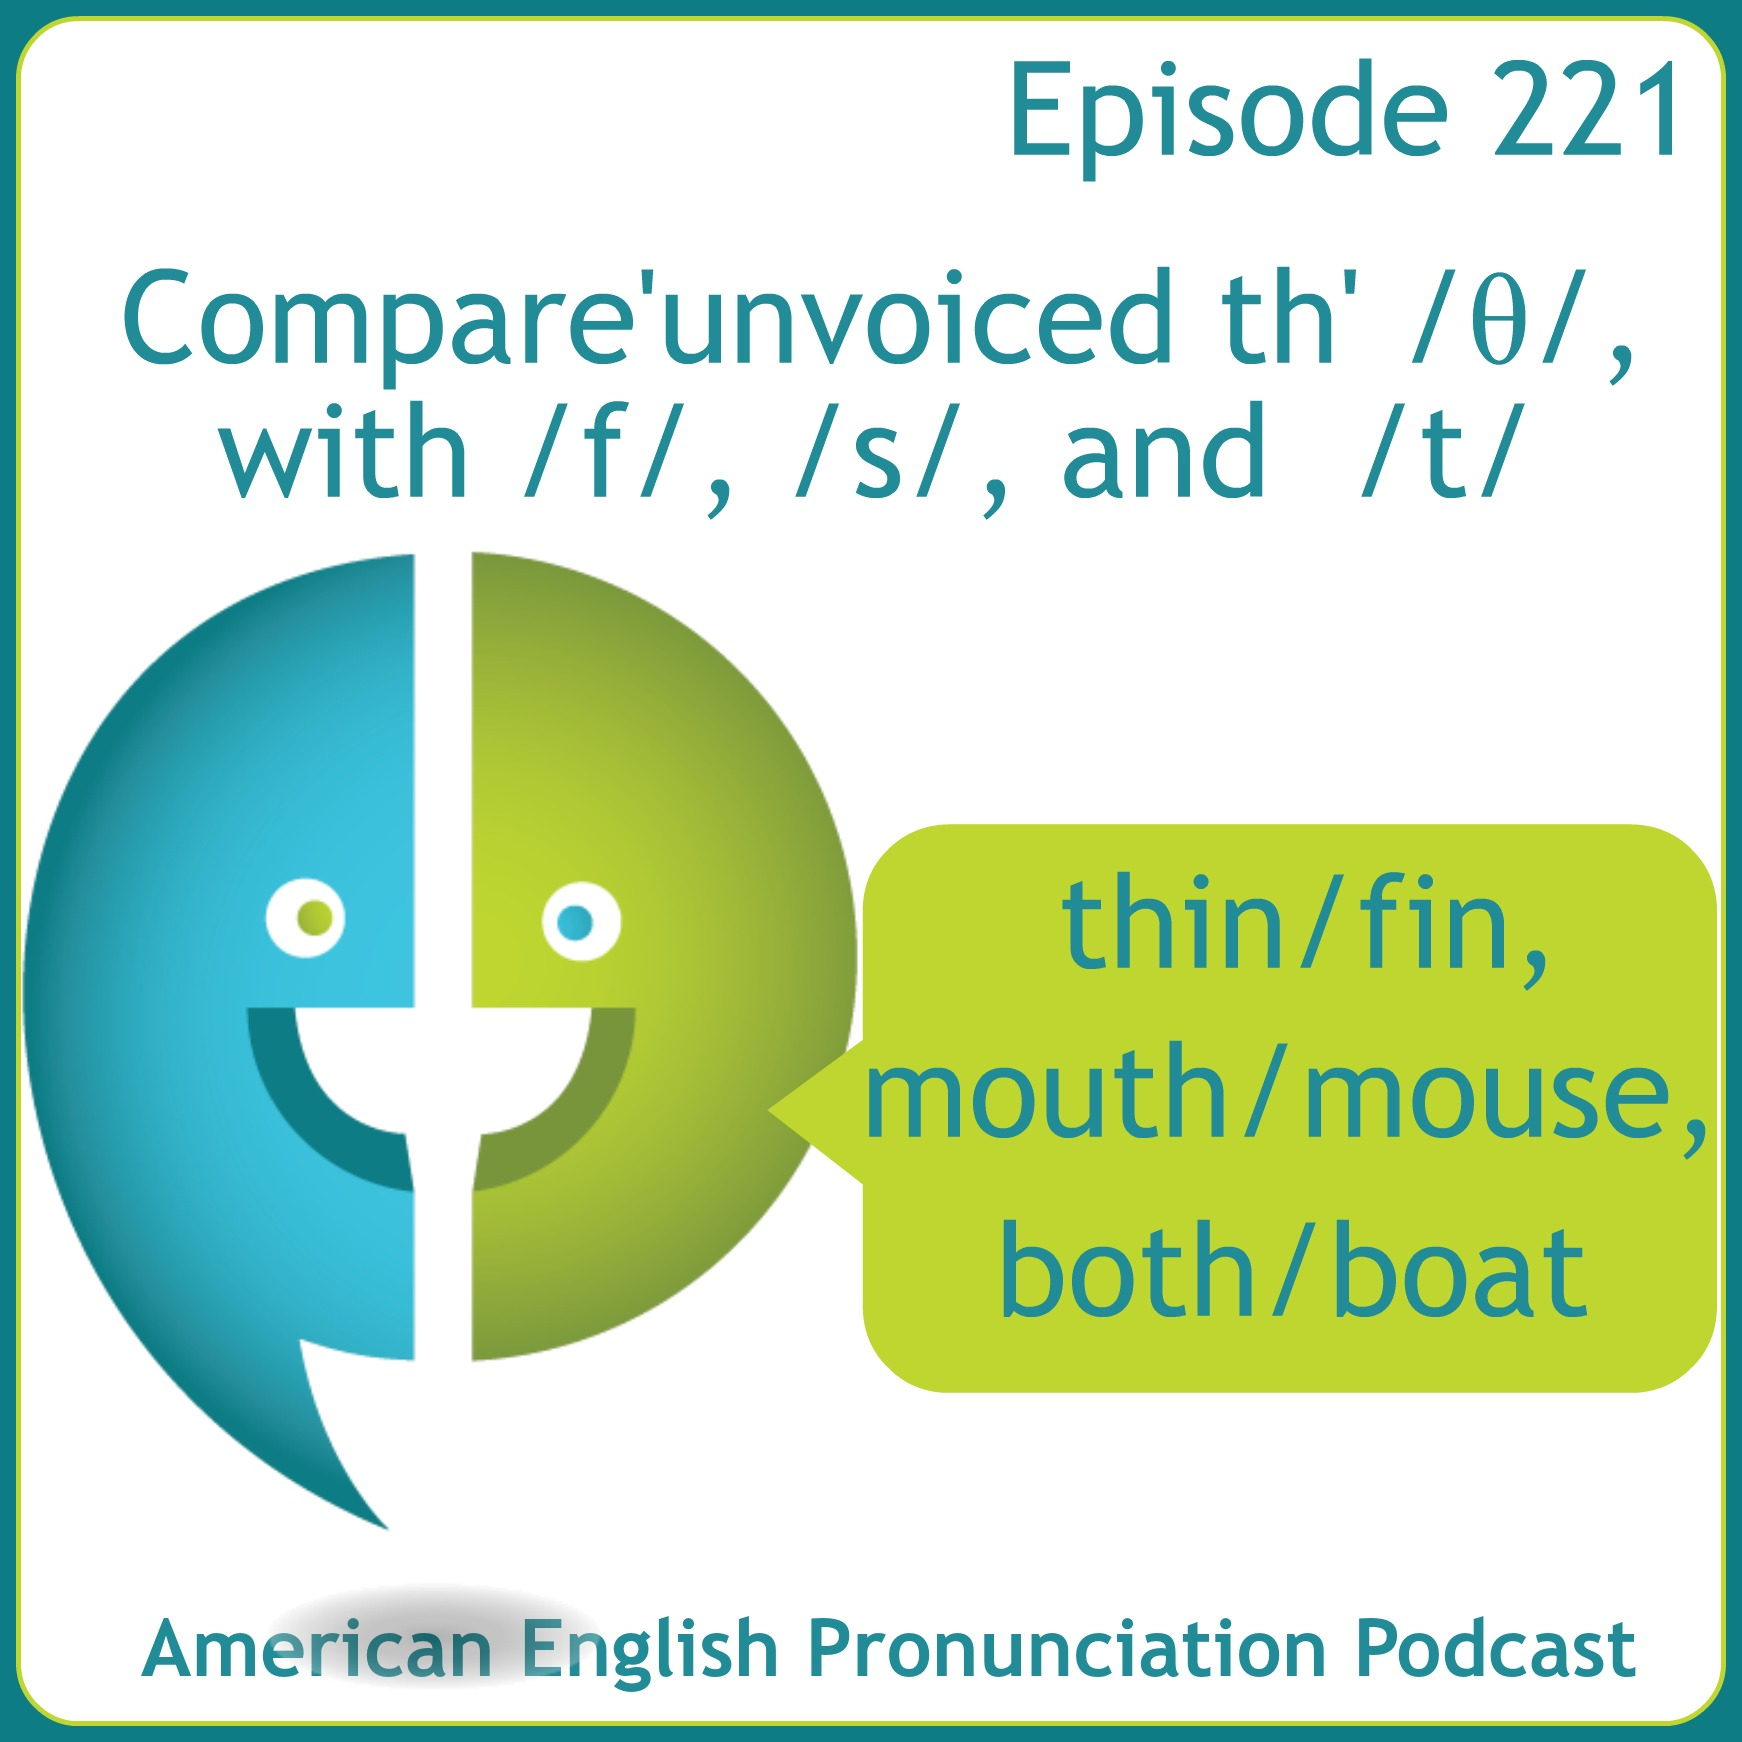 American English Pronunciation Podcast 221